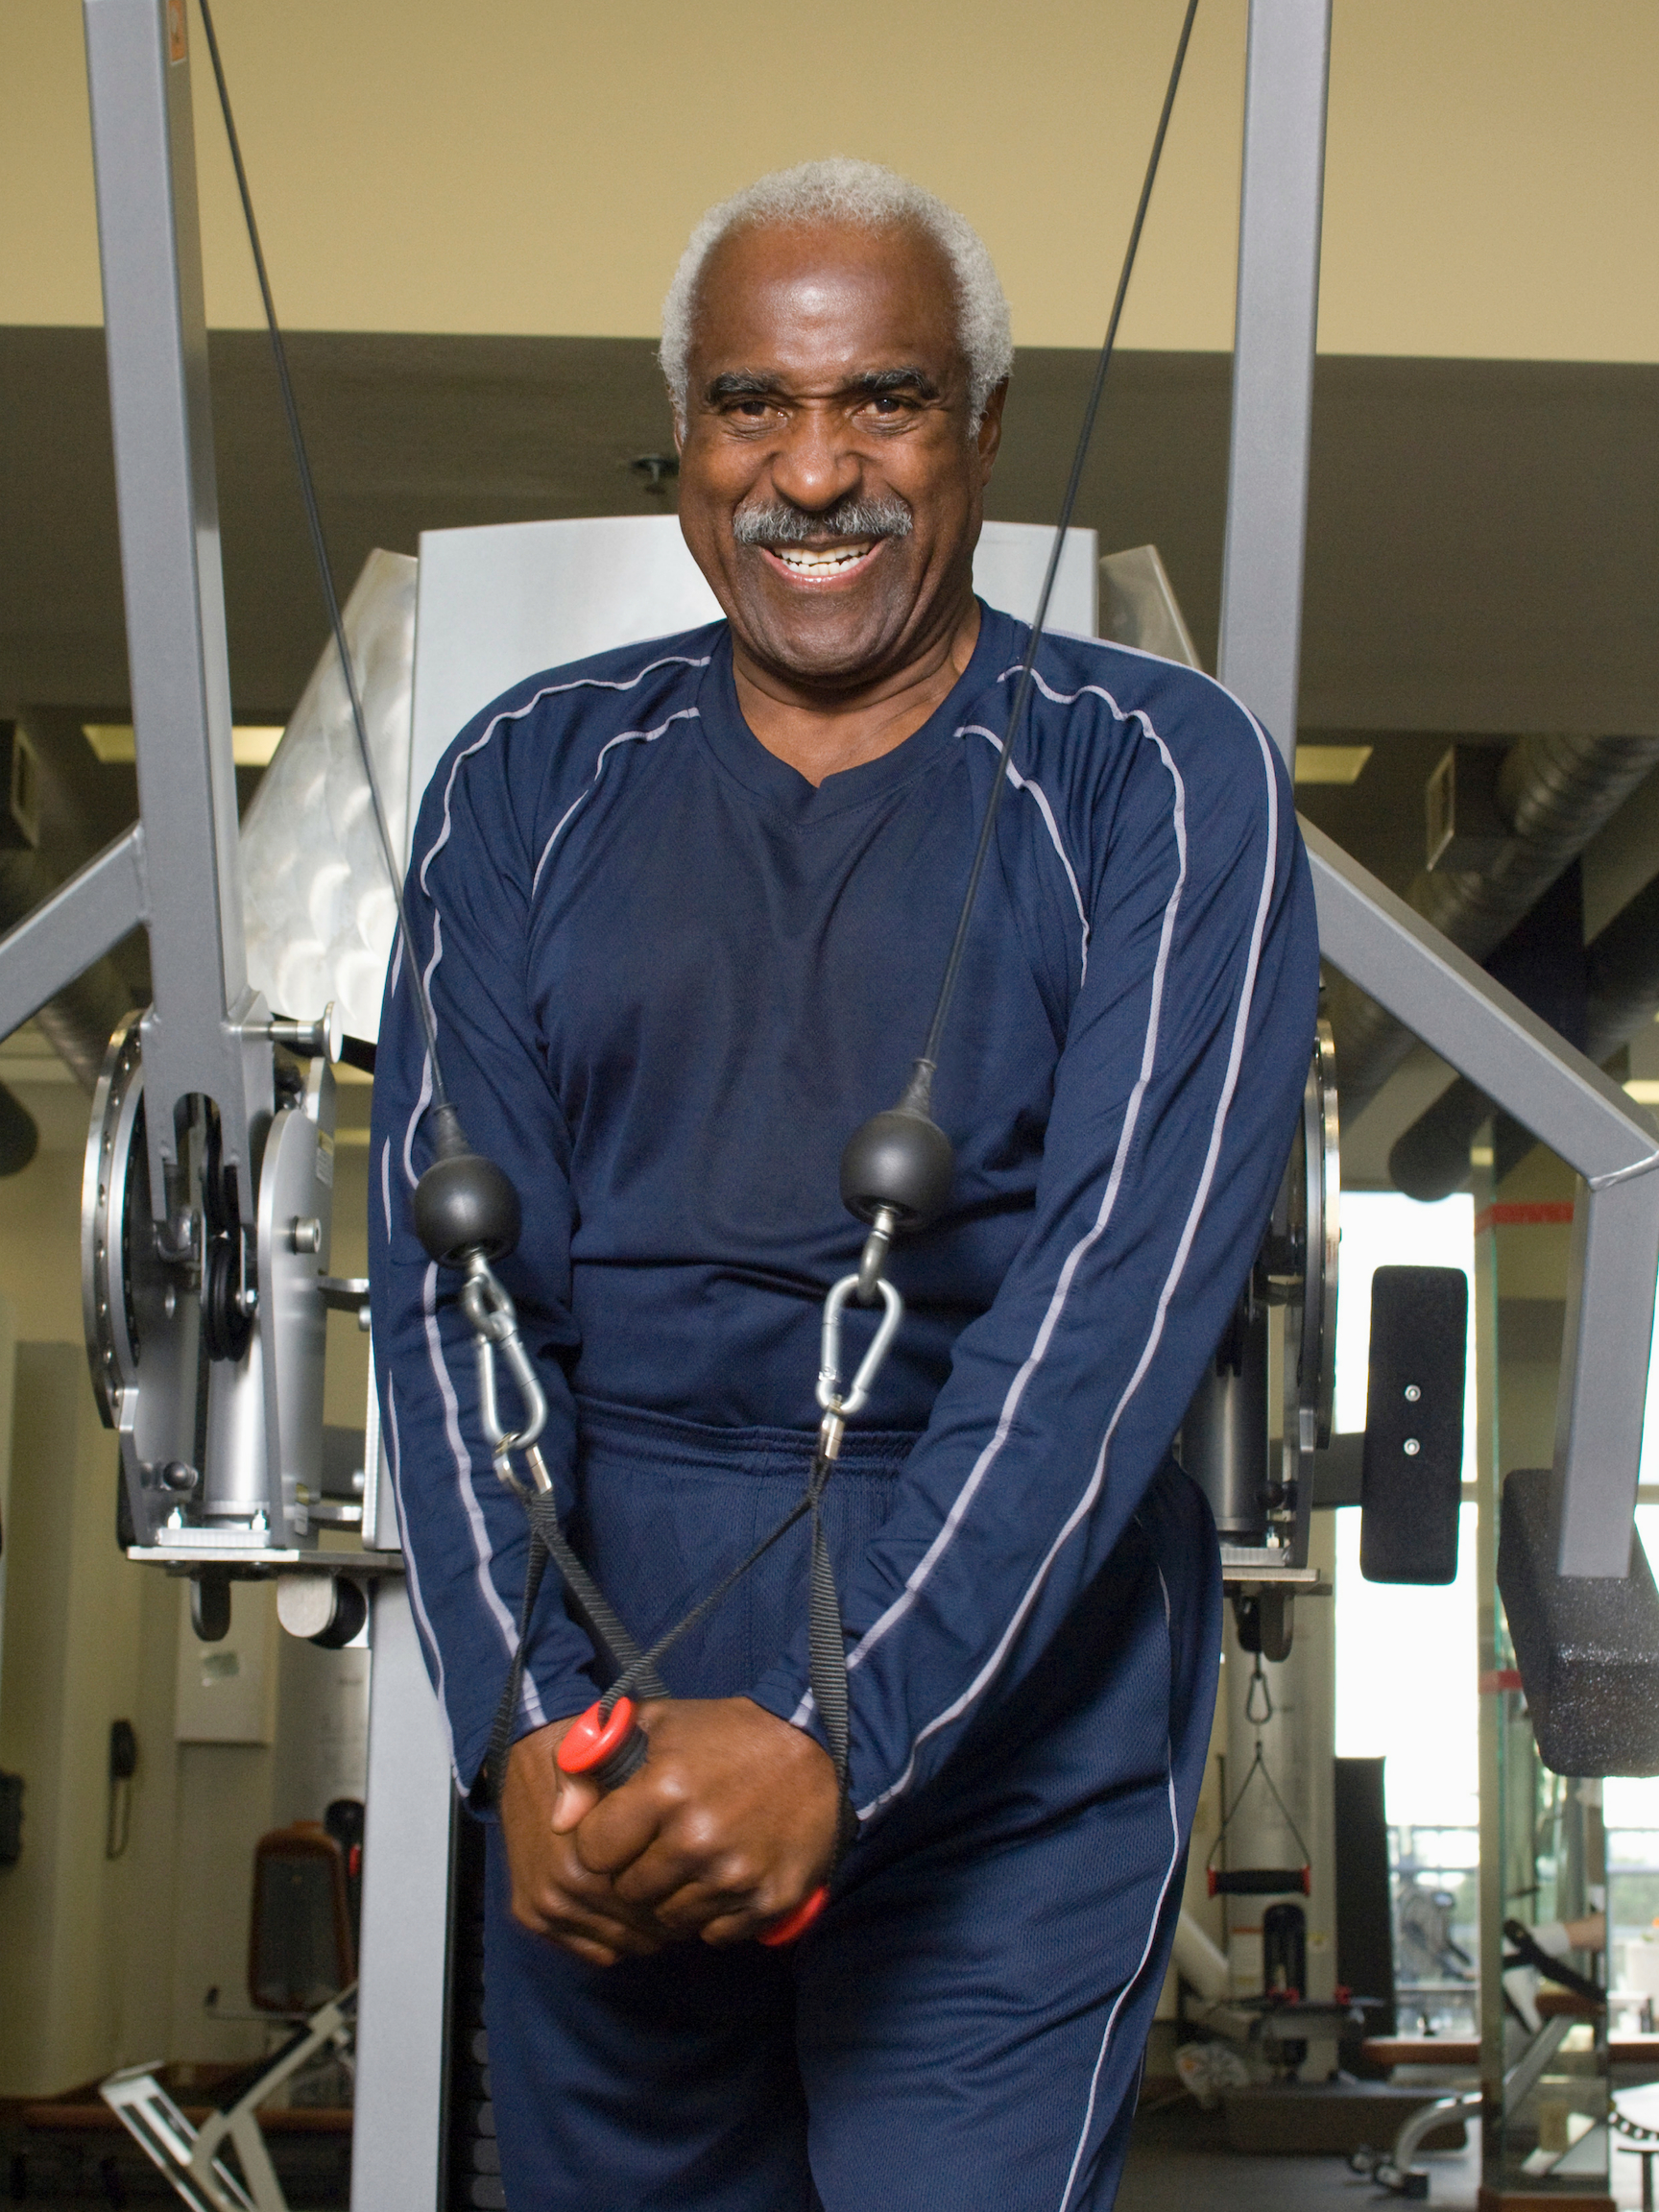 man working out.jpg